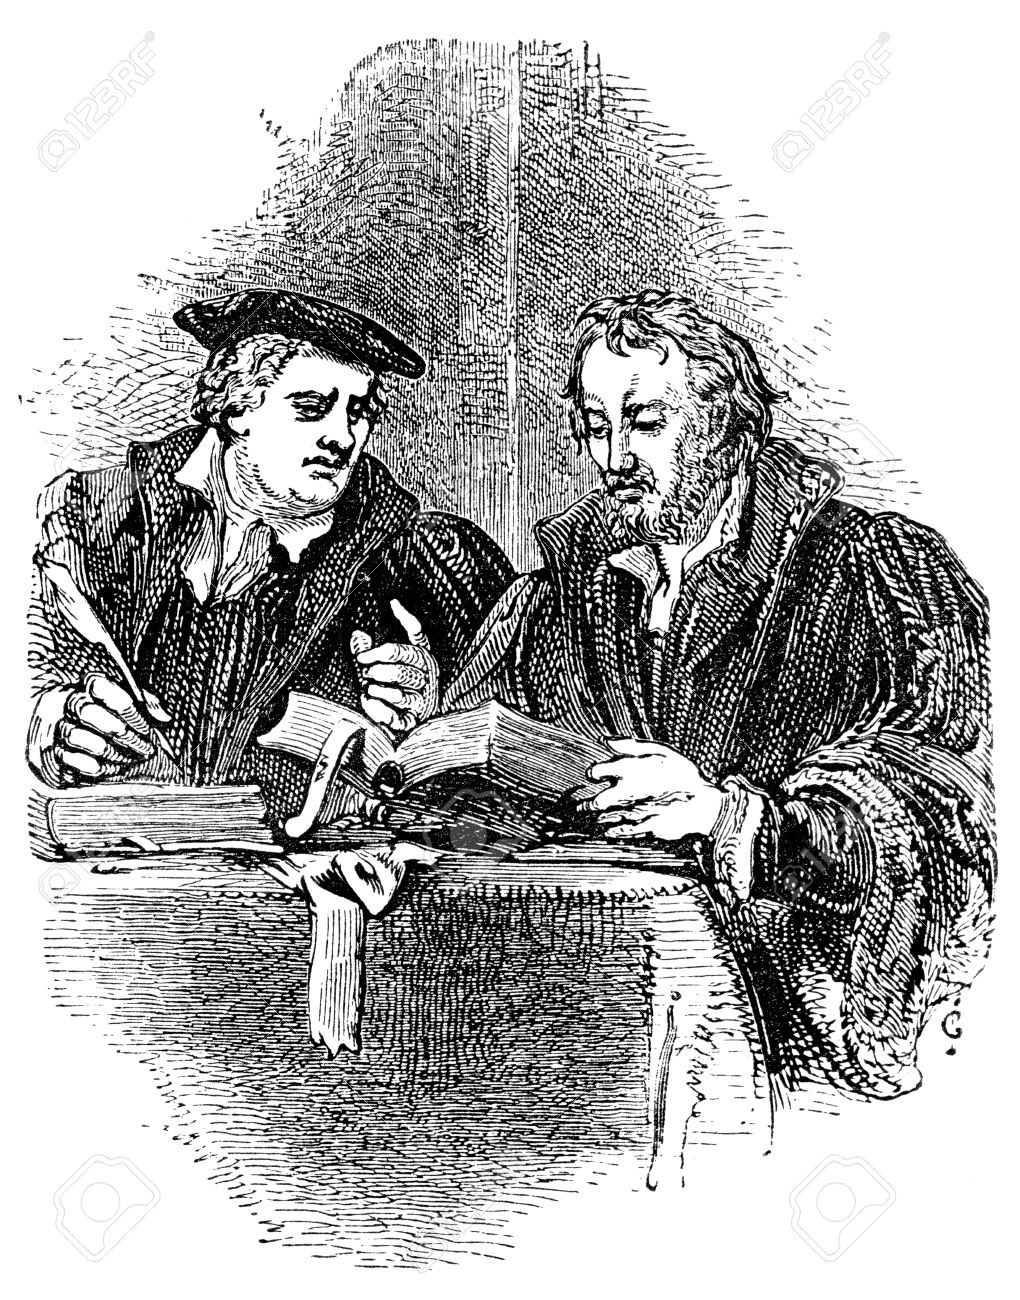 Protestant reformation stock photos pictures royalty free an engraved vintage portrait illustration of martin luther and philip melancthon leading figures of the protestant buycottarizona